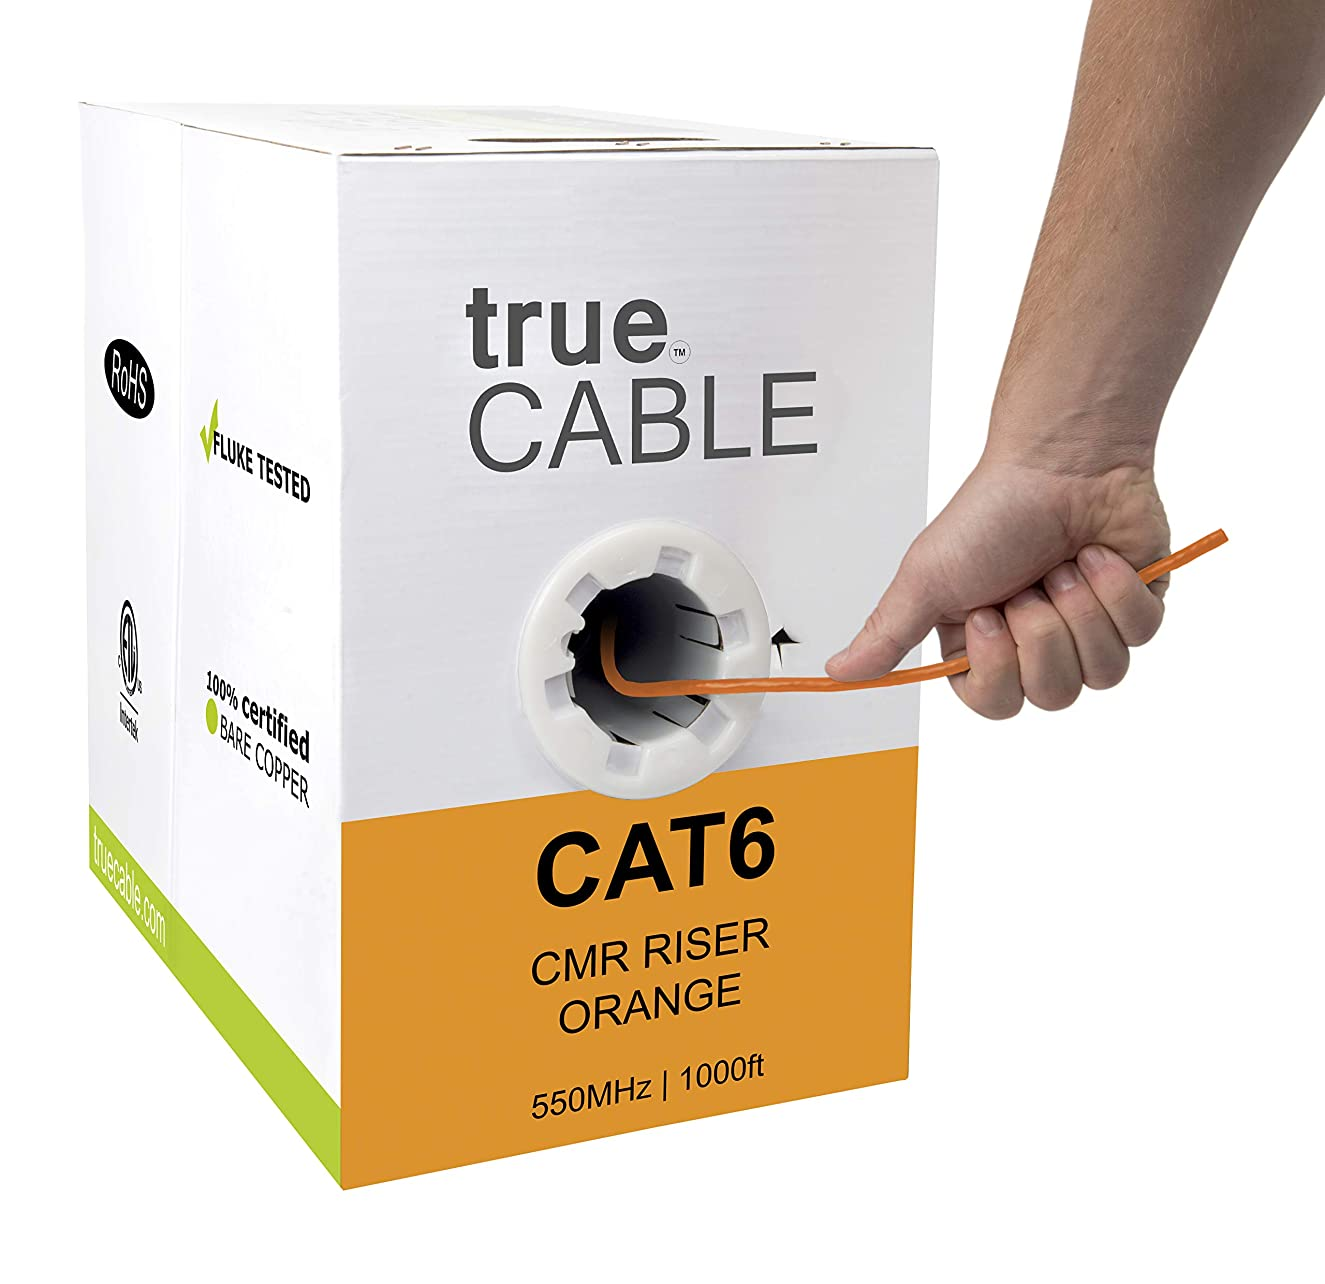 Cat6 Riser (CMR), 1000ft, Orange, 23AWG 4 Pair Solid Bare Copper, 550MHz, ETL Listed, Unshielded Twisted Pair (UTP), Bulk Ethernet Cable, trueCABLE